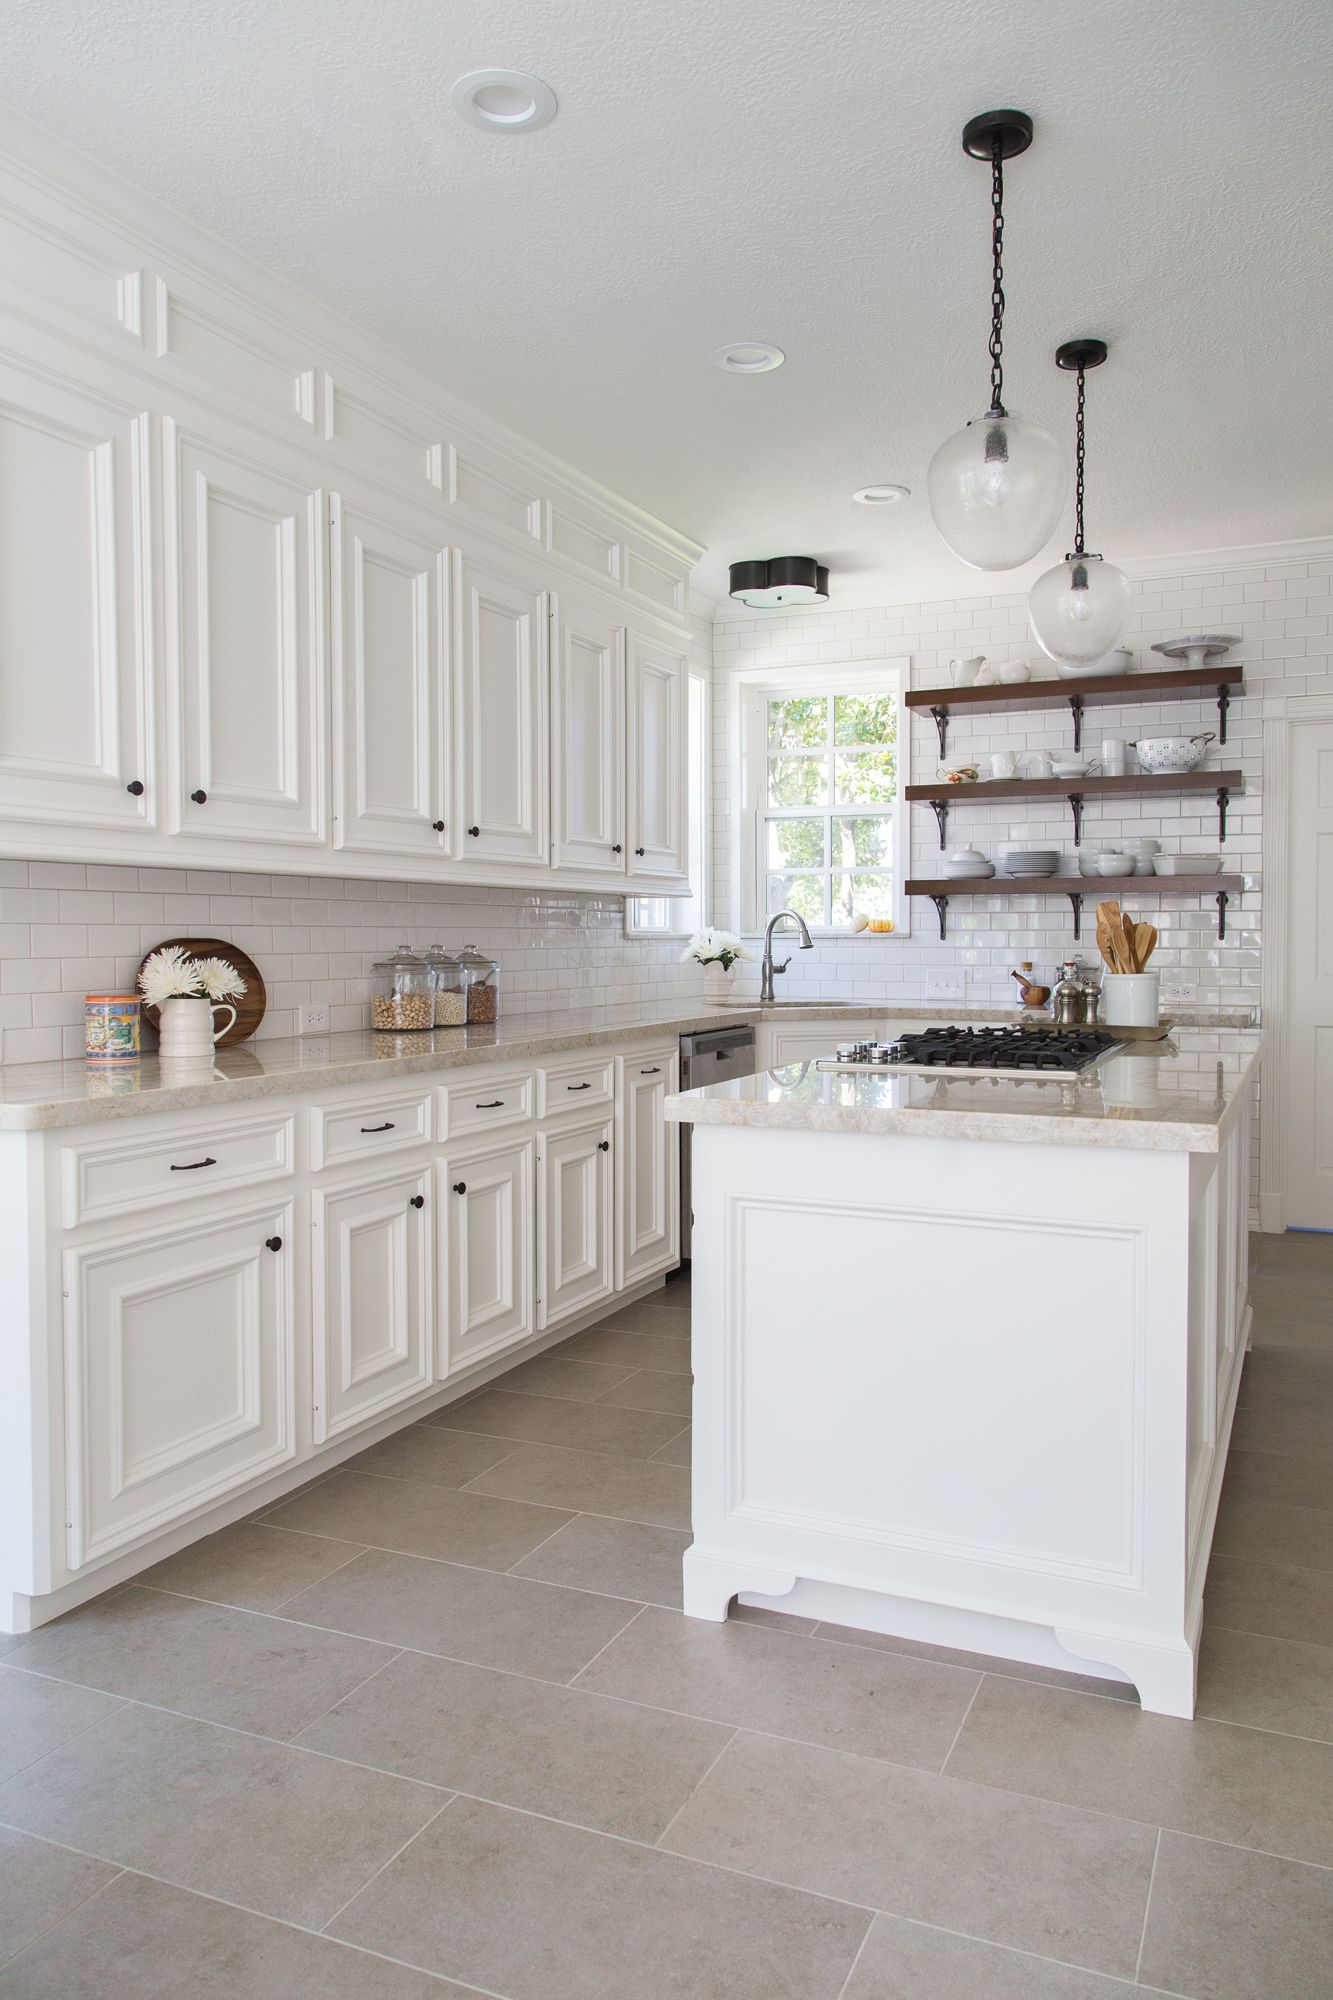 kitchen floor tiles BEFORE AFTER A Dark Dismal Kitchen Is Made Light And Bright Light Flooring KitchenLarge Tile